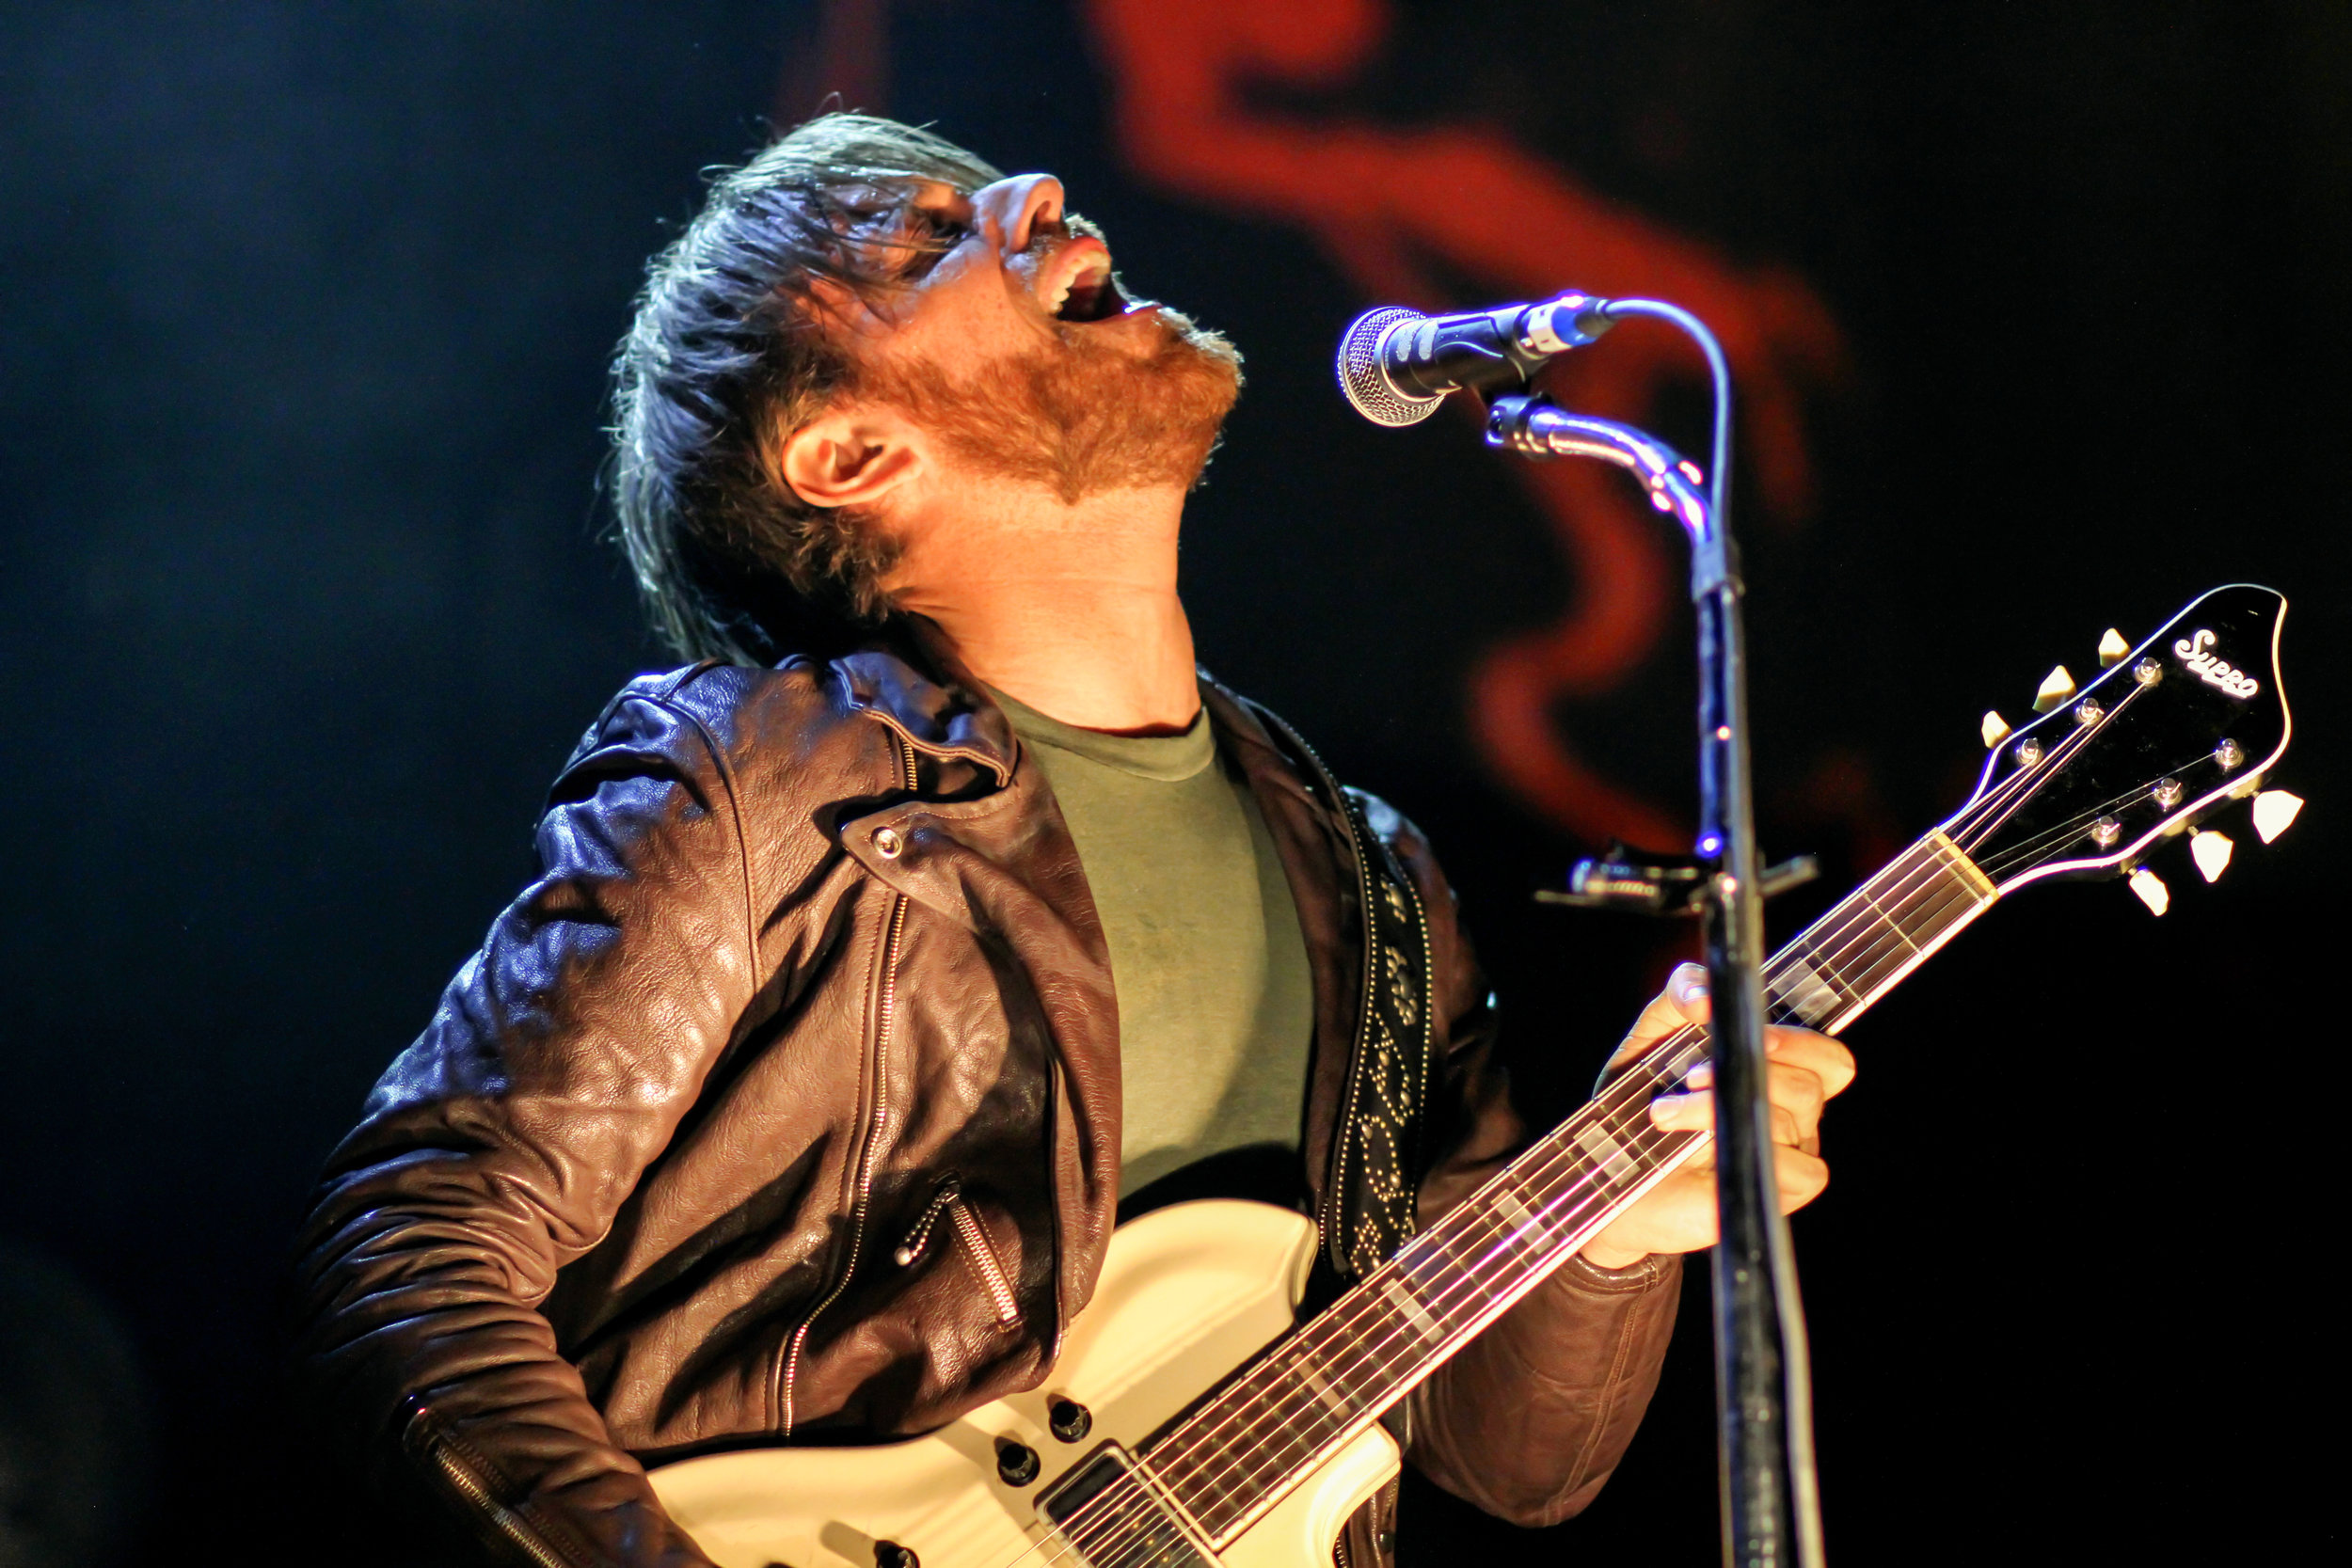 Dan Auerbach/The Black Keys - 2012